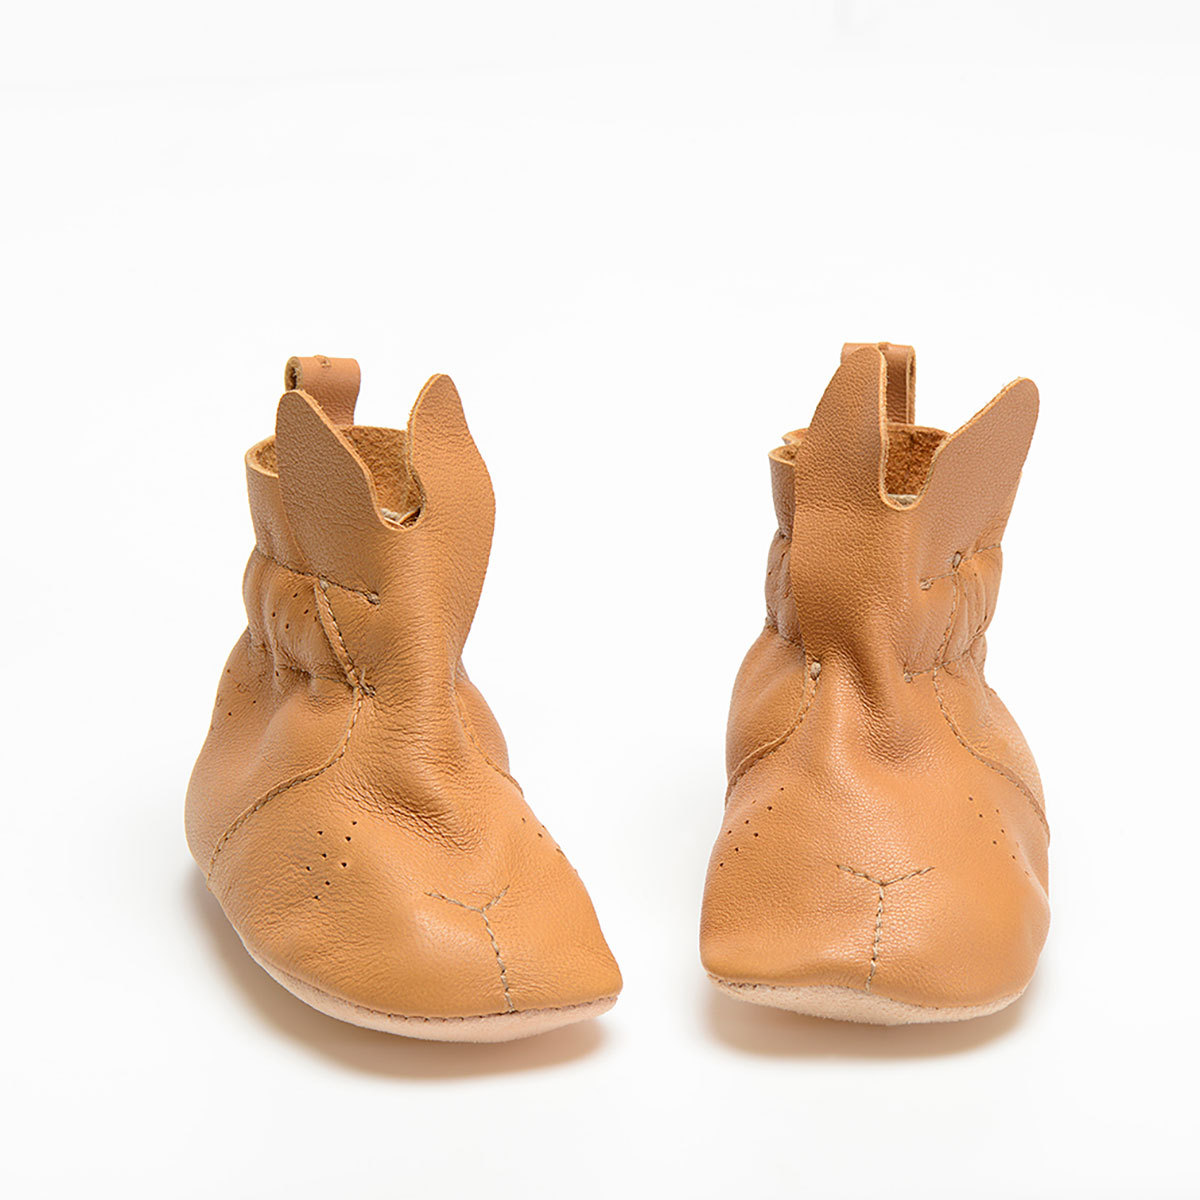 Chaussons & Chaussures Chaussures Lilou Camel - Taille 20 Chaussures Lilou Camel - Taille 20